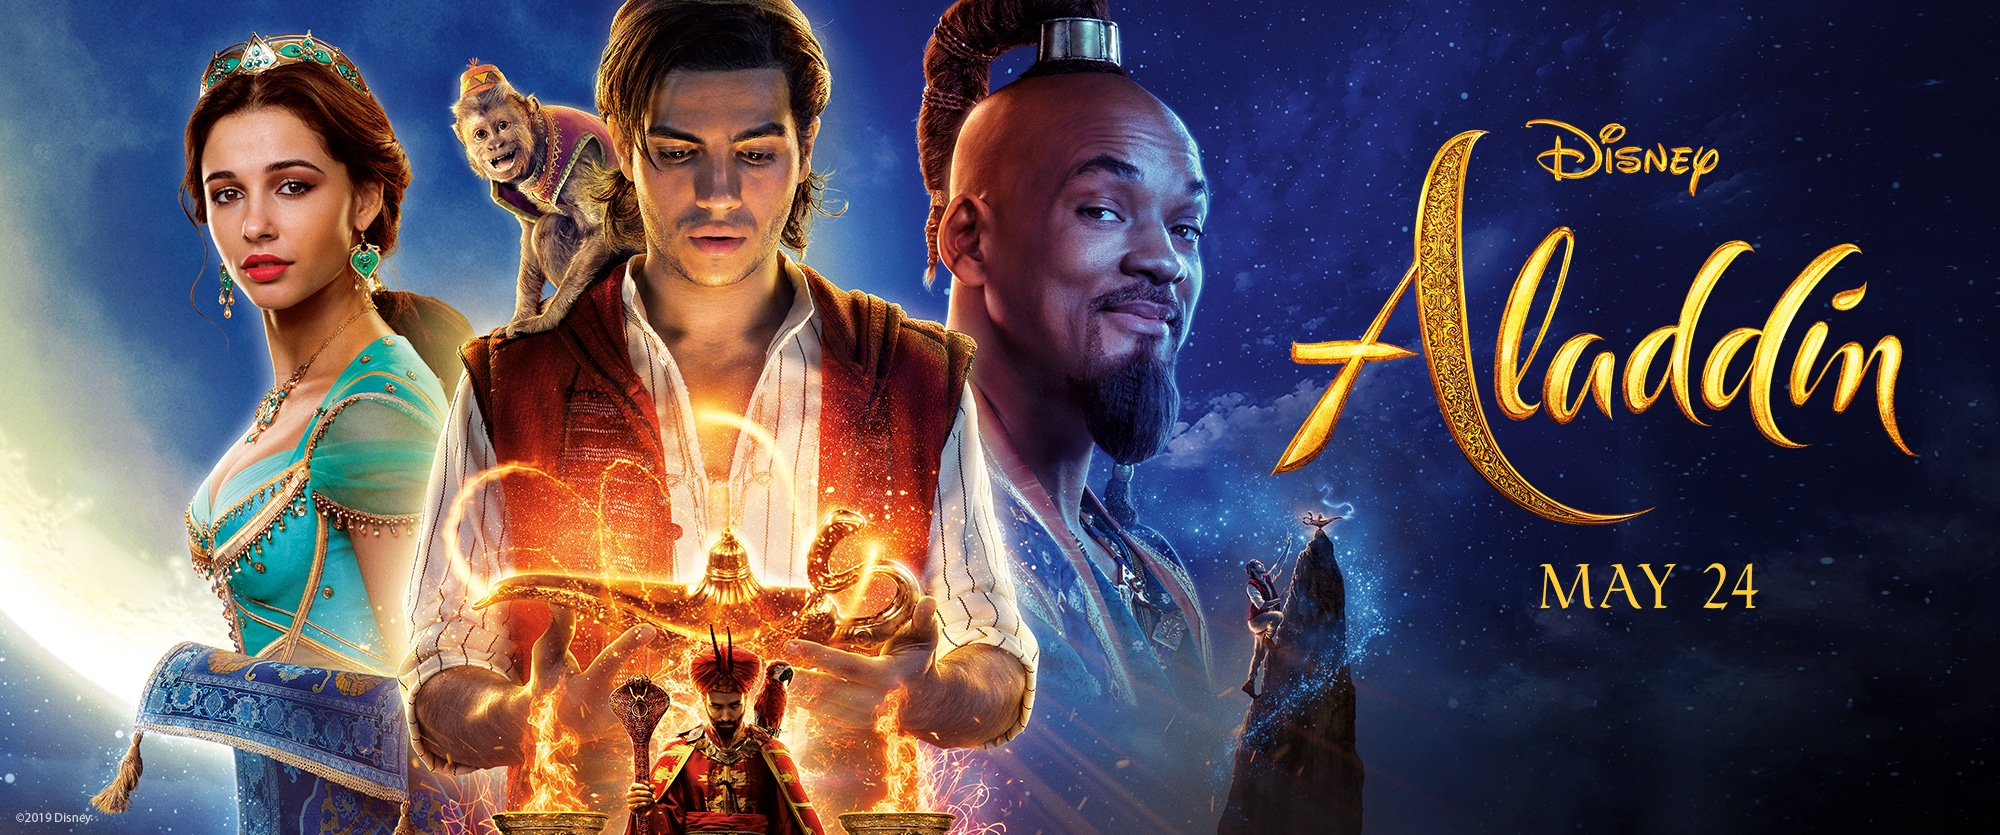 Aladdin_Movie Page_Hero Banner New 1